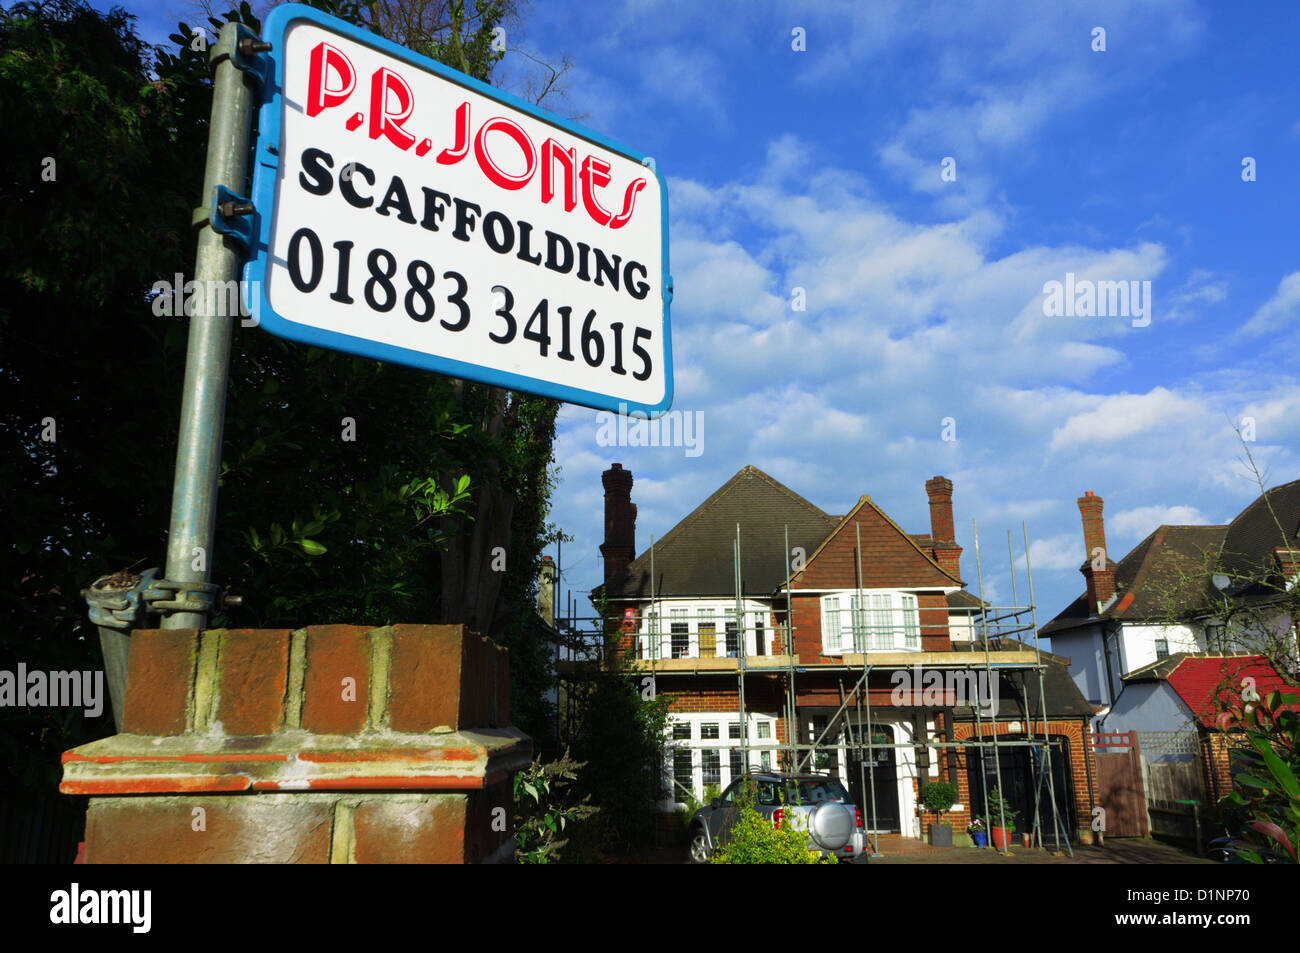 A scaffolding contractor's sign while work is carried out on a detached house. - Stock Image